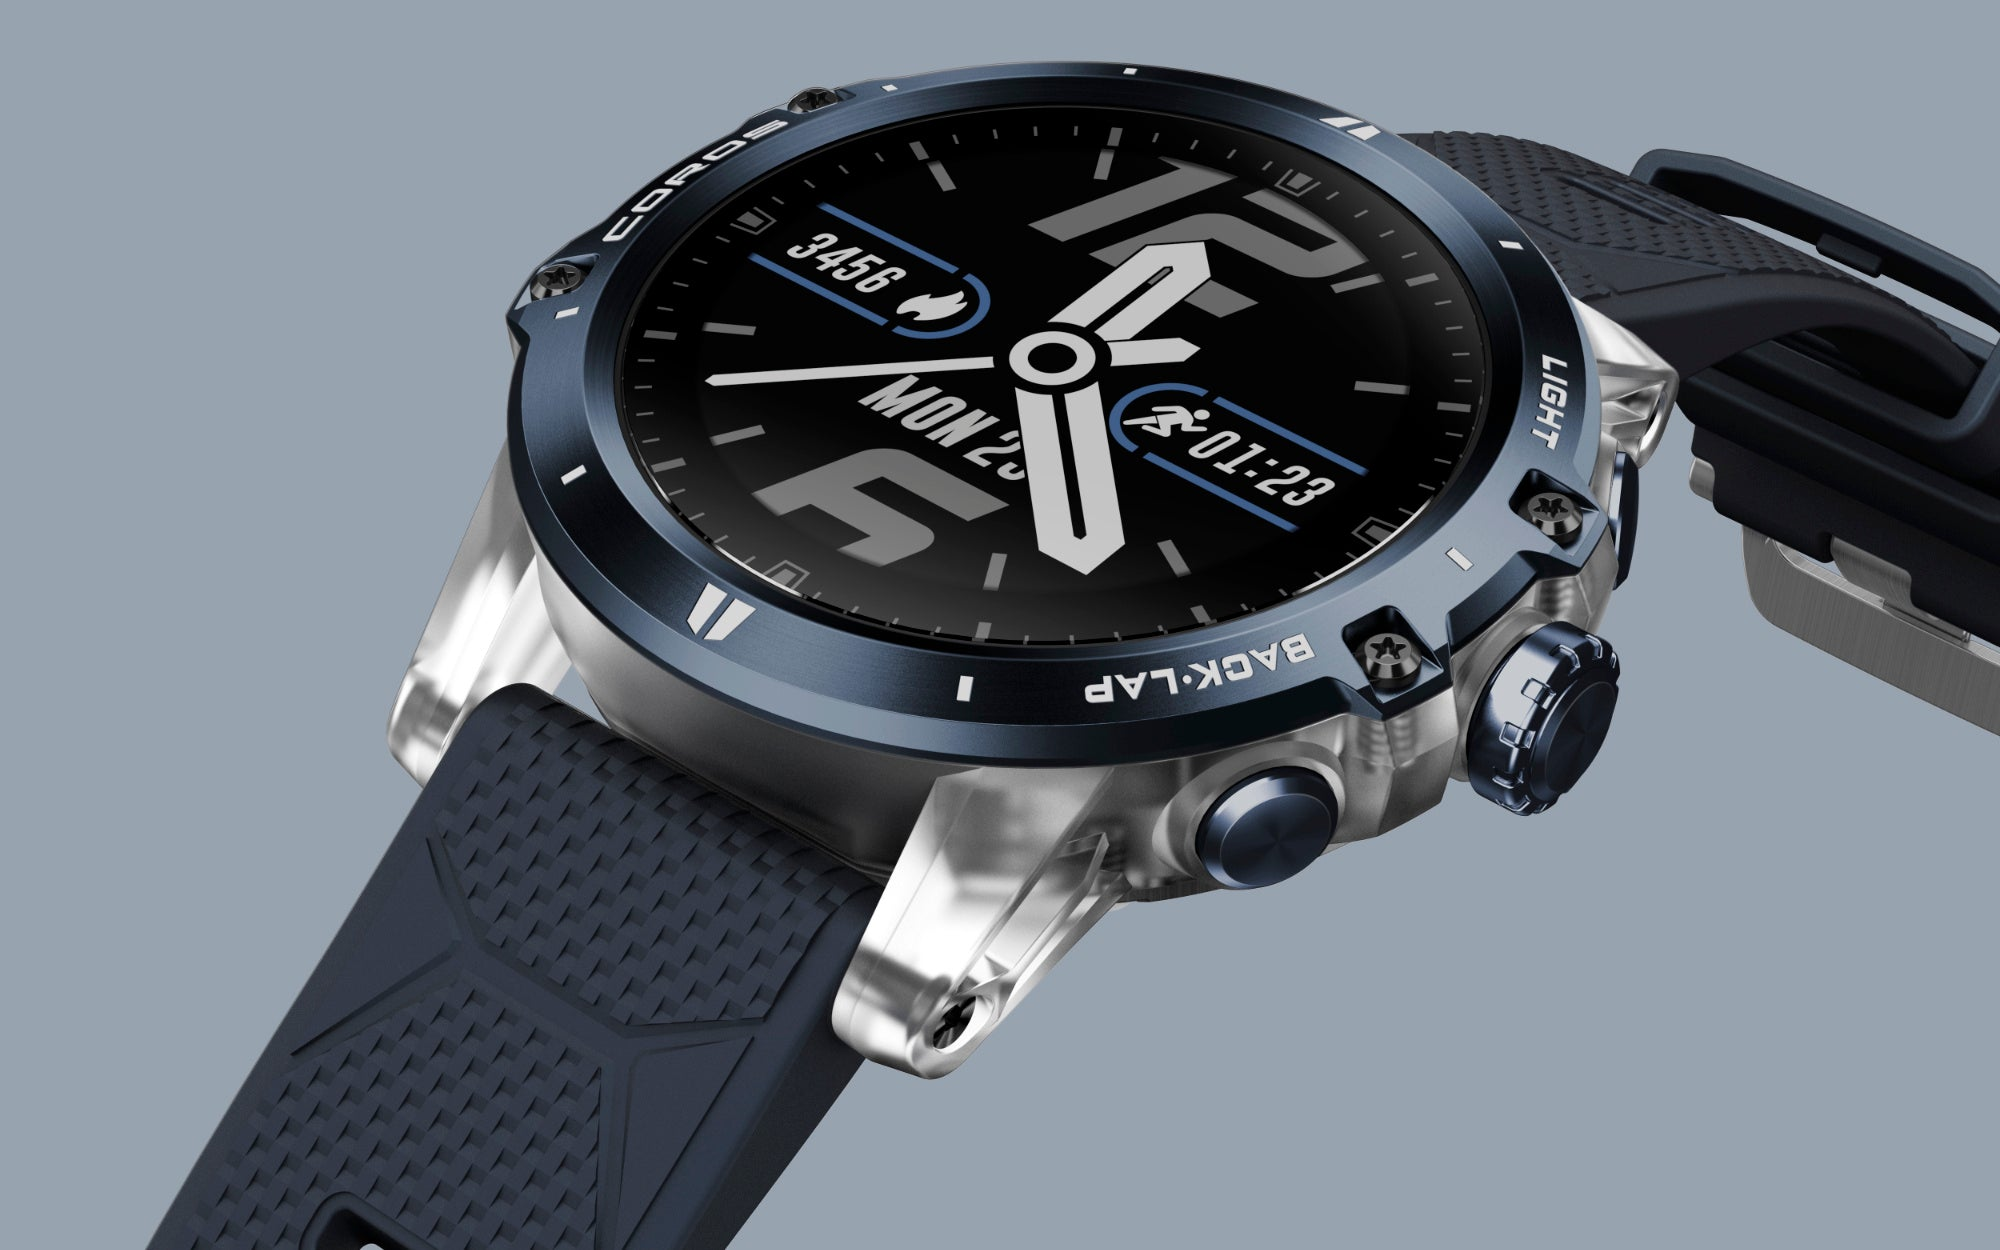 COROS Vertix - Ice Breaker. The exclusive azure titanium bezel and transparent fiber case. Stand out in a crowd.